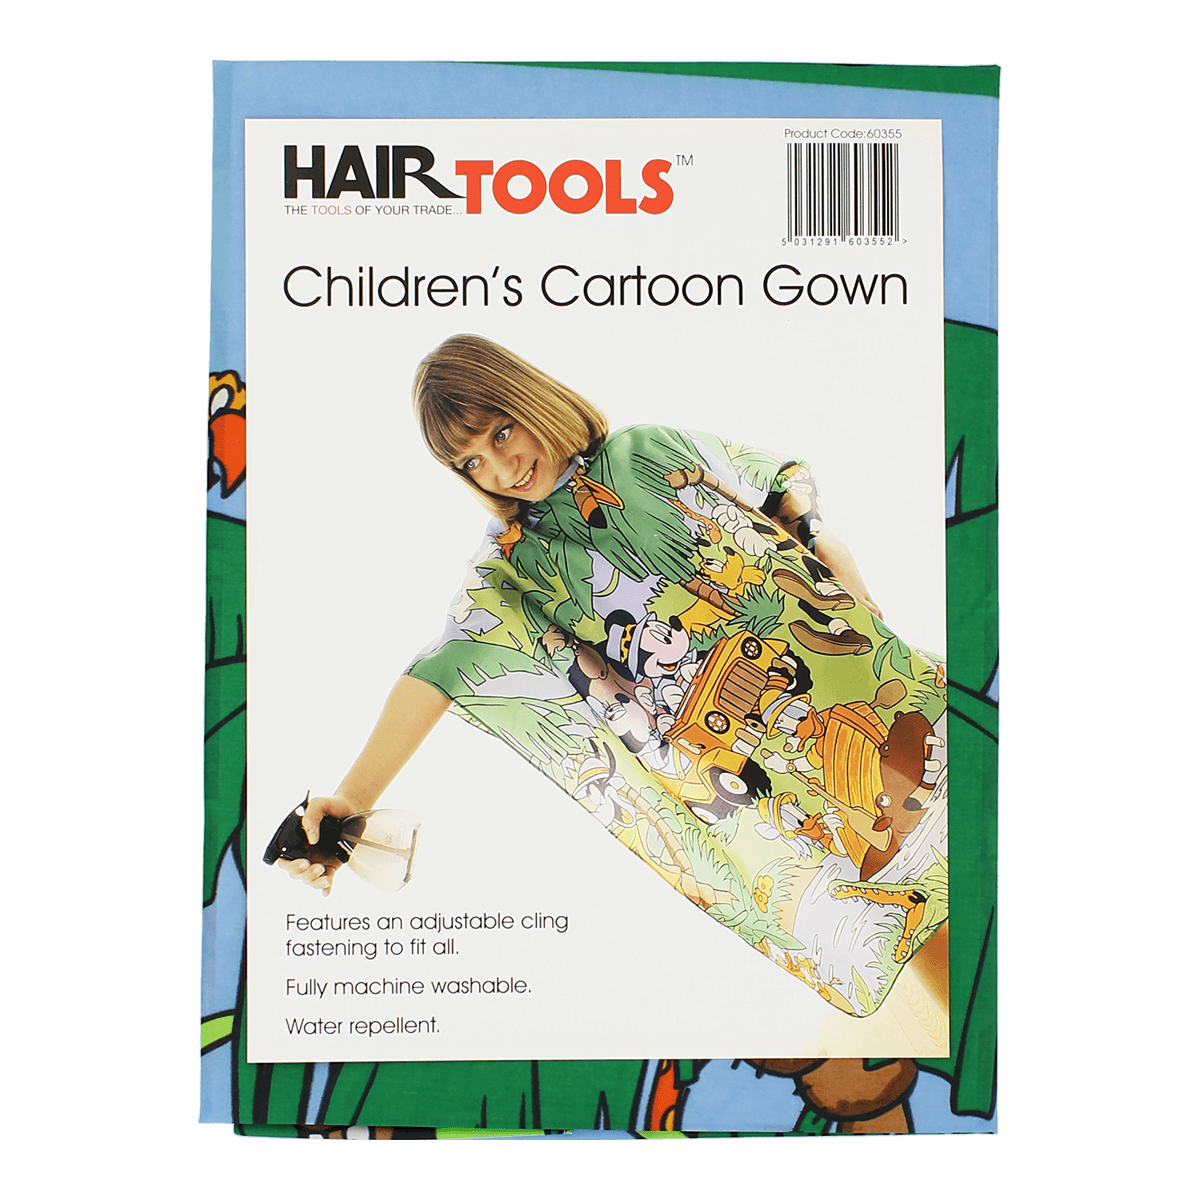 HairTools - Children's Cartoon Gown